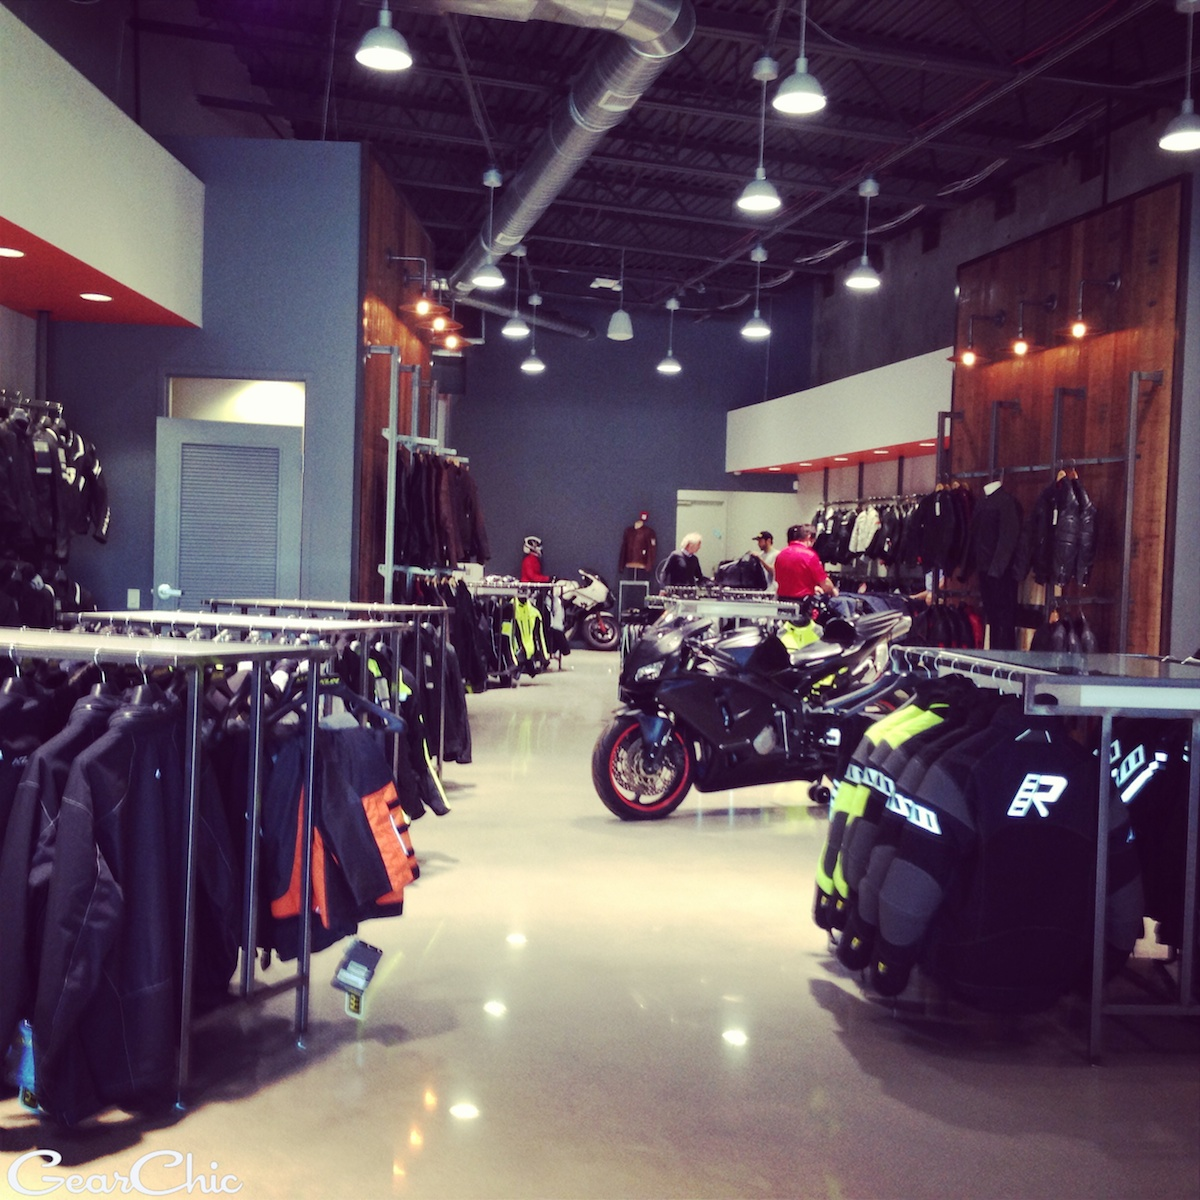 revzilla navy yard philadelphia pennsylvania motorcycle gear best selection philly